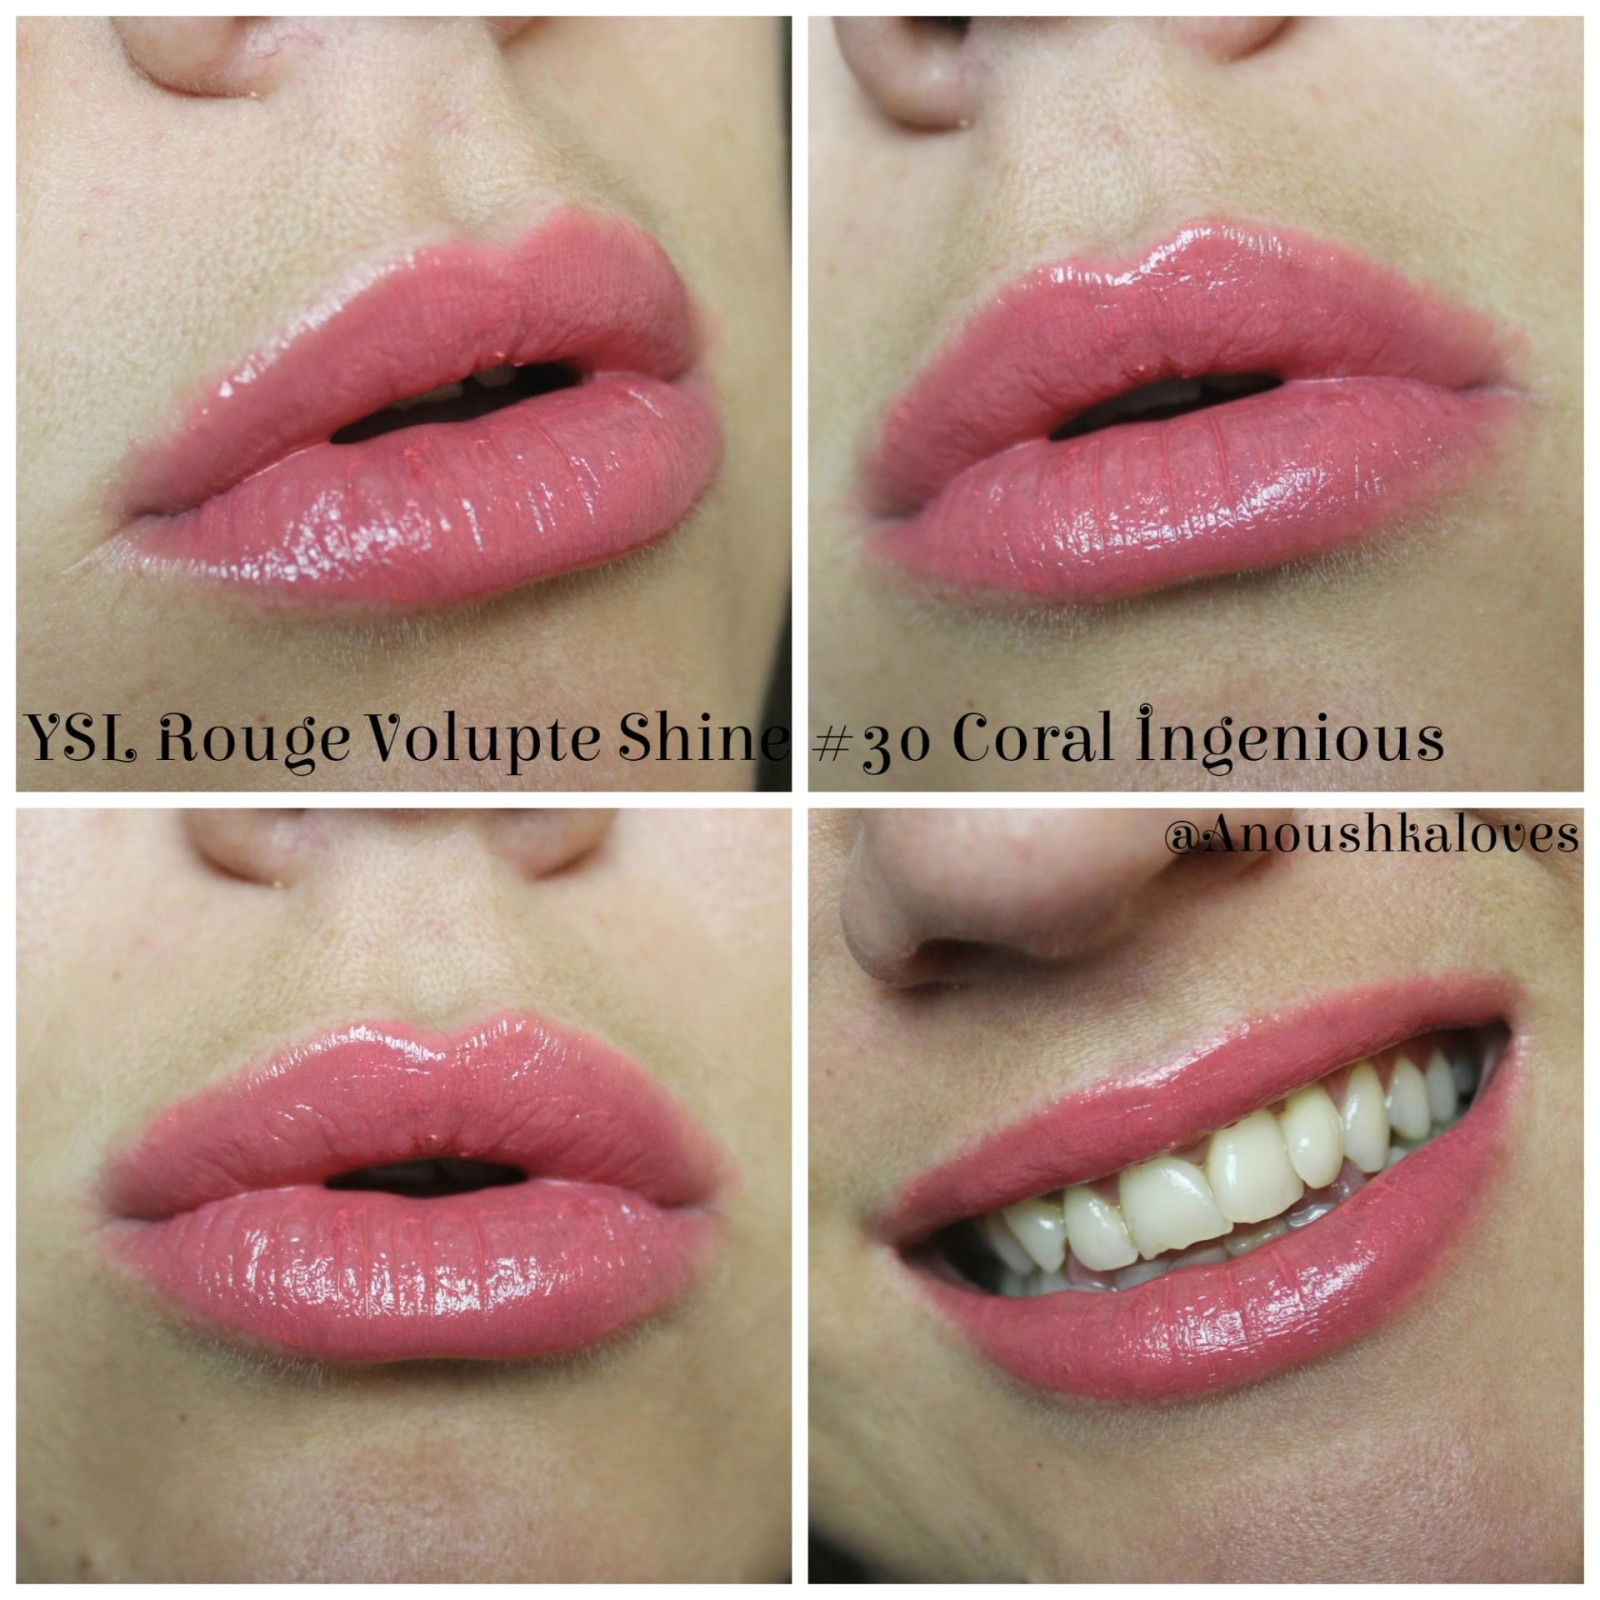 YSL Rouge Volupte Shine 30 Coral Ingenious